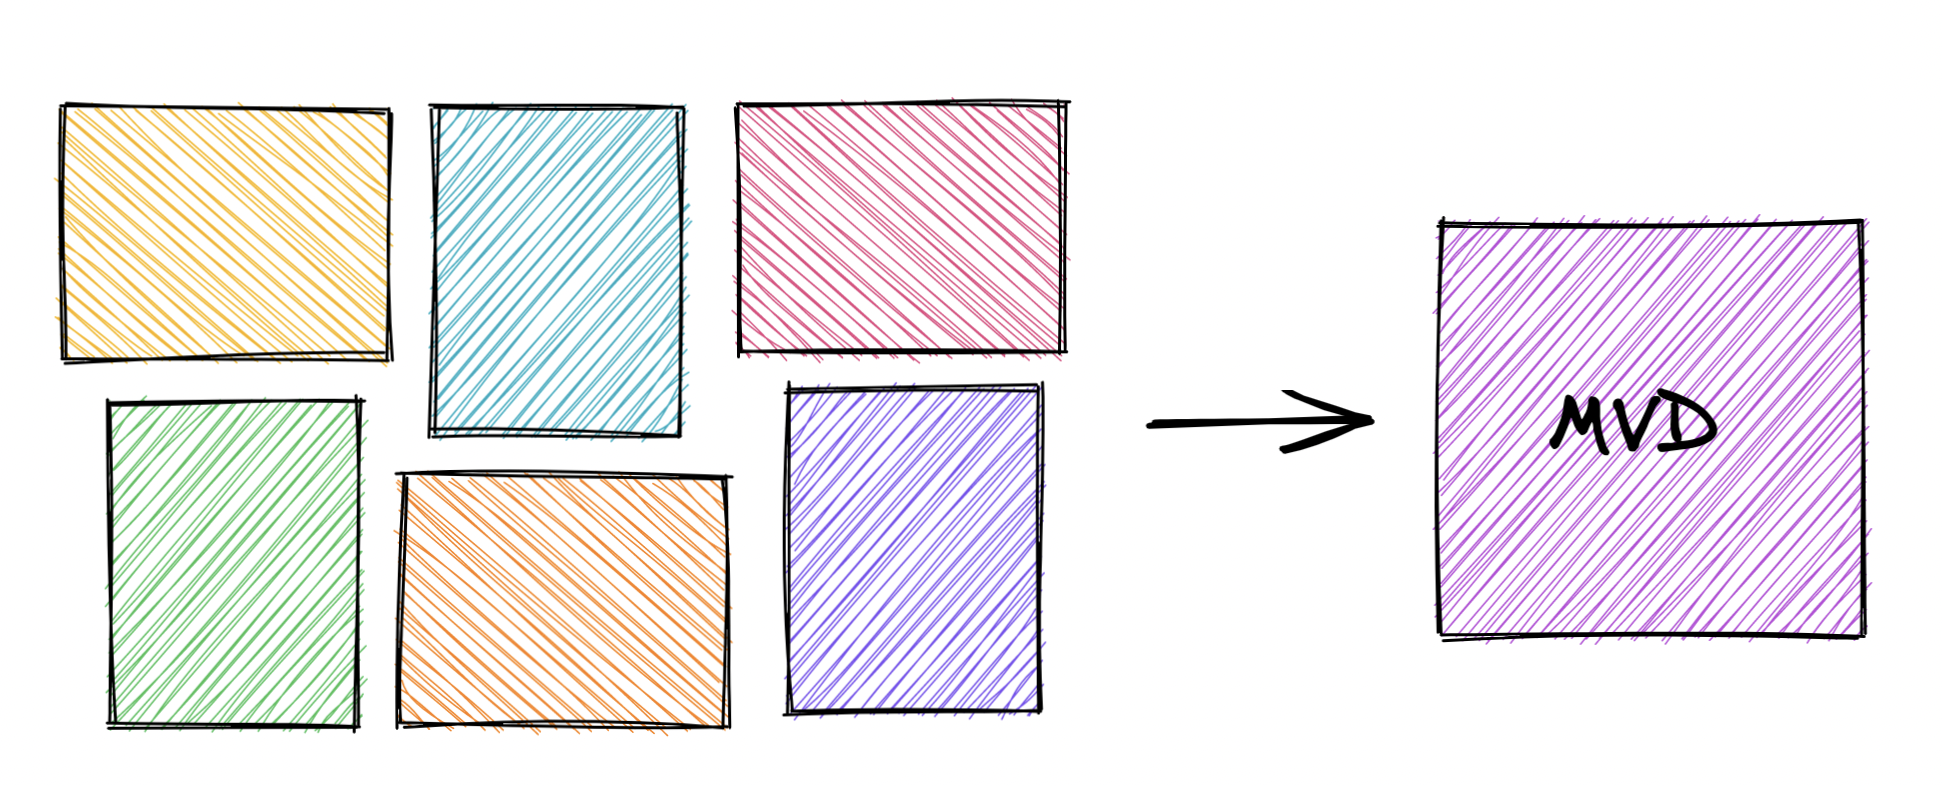 Diagram using different colored shaded rectangles to represent competitor documentation, with an arrow pointing to MVD.